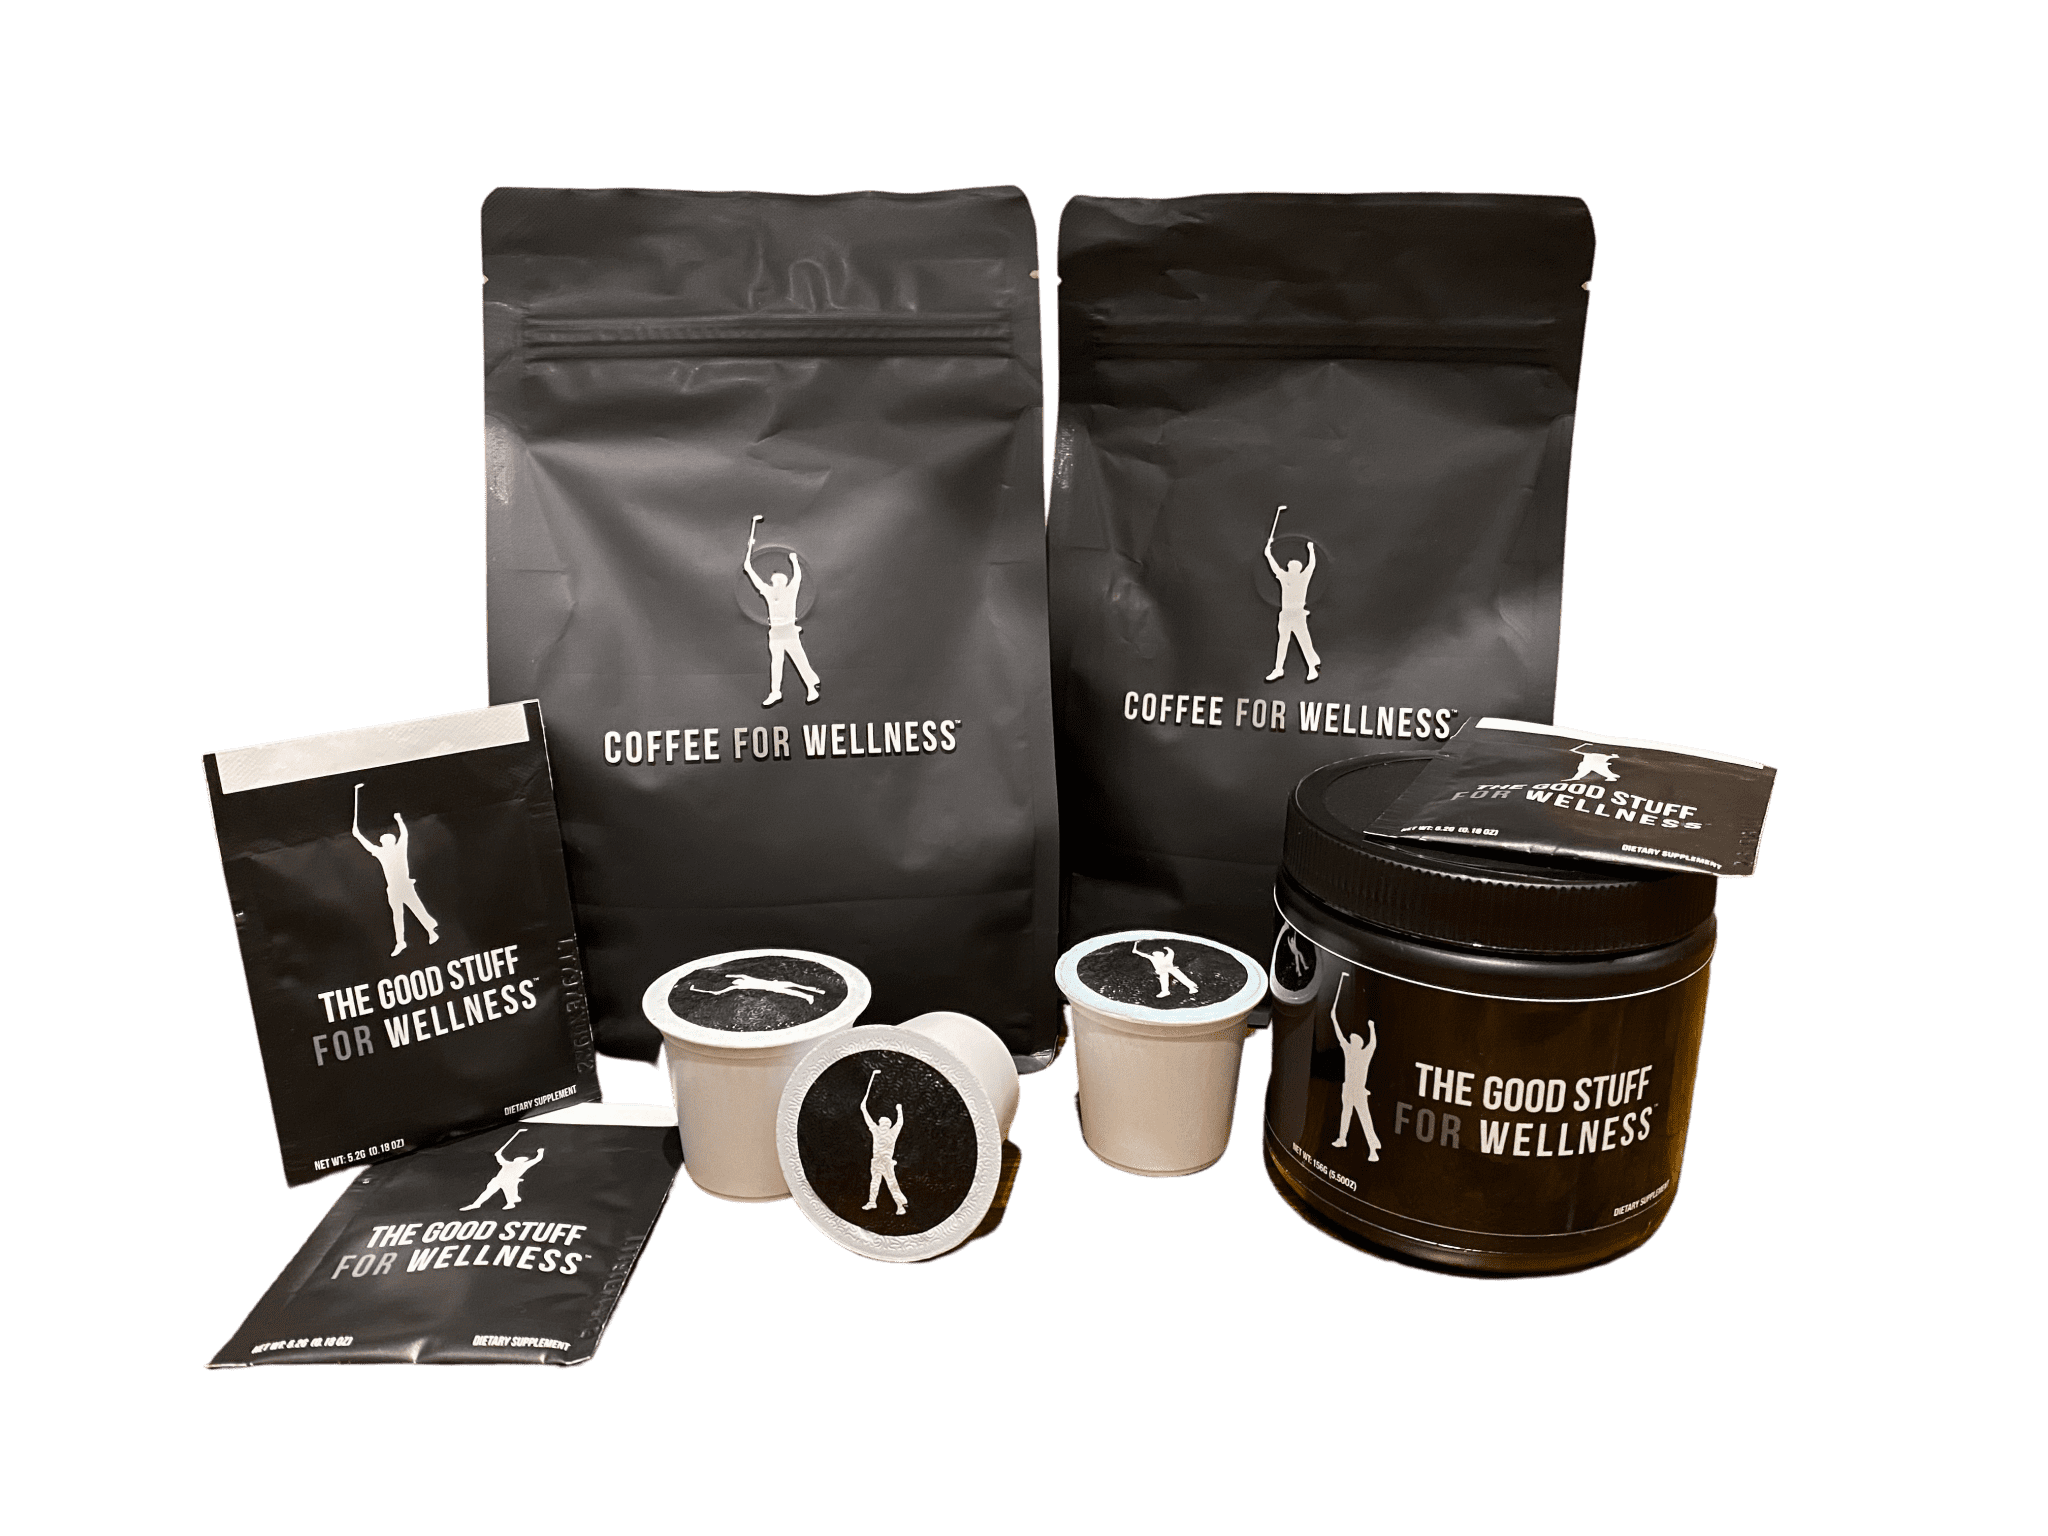 A variety of Coffee for Wellness products